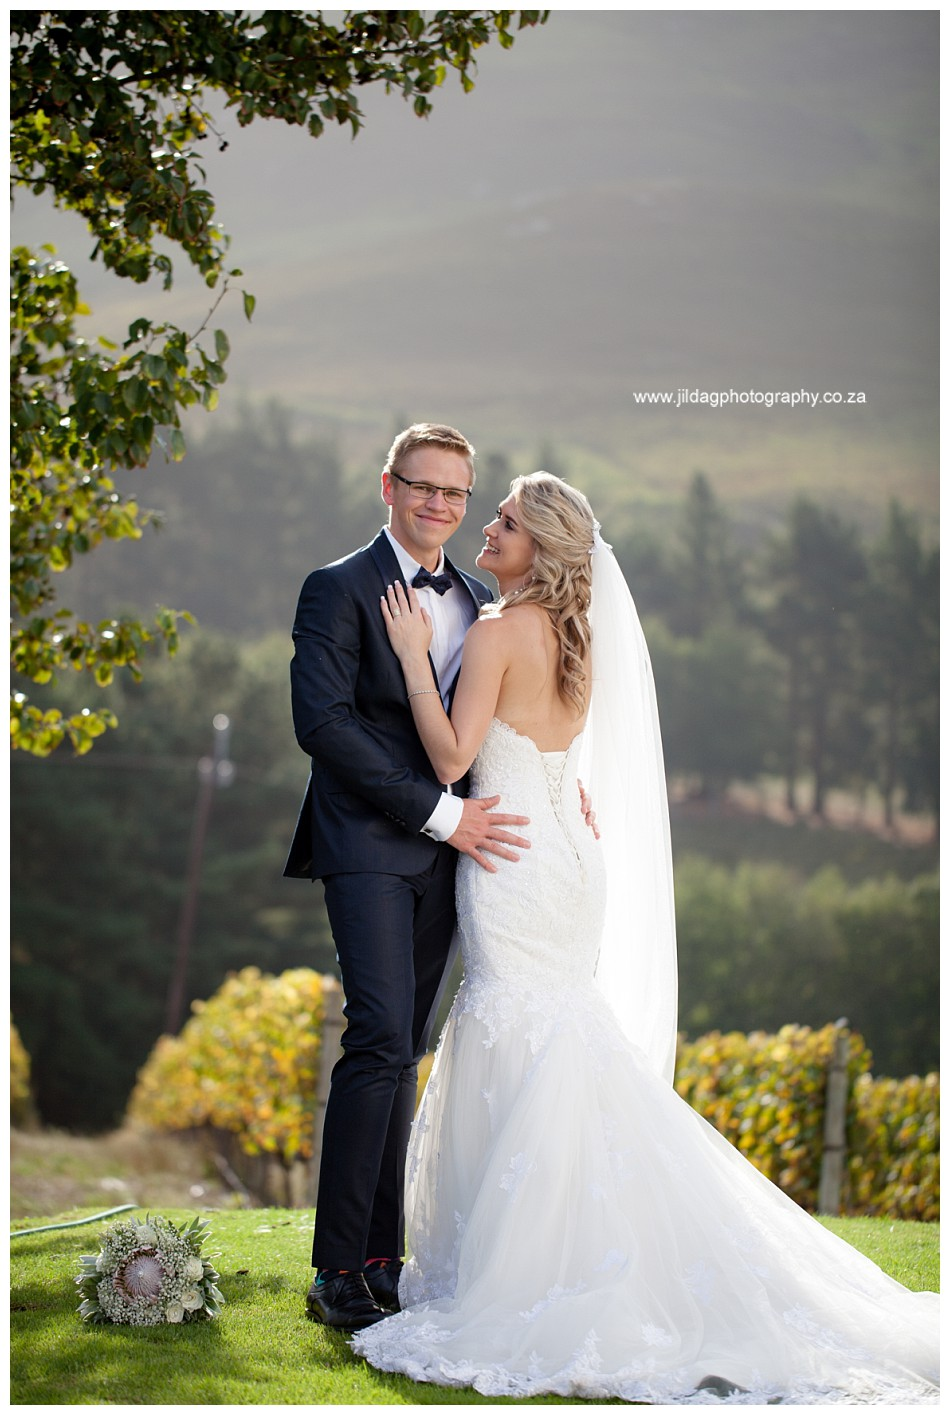 Jilda G Photography-spookfontein-Hermanus-wedding_2331